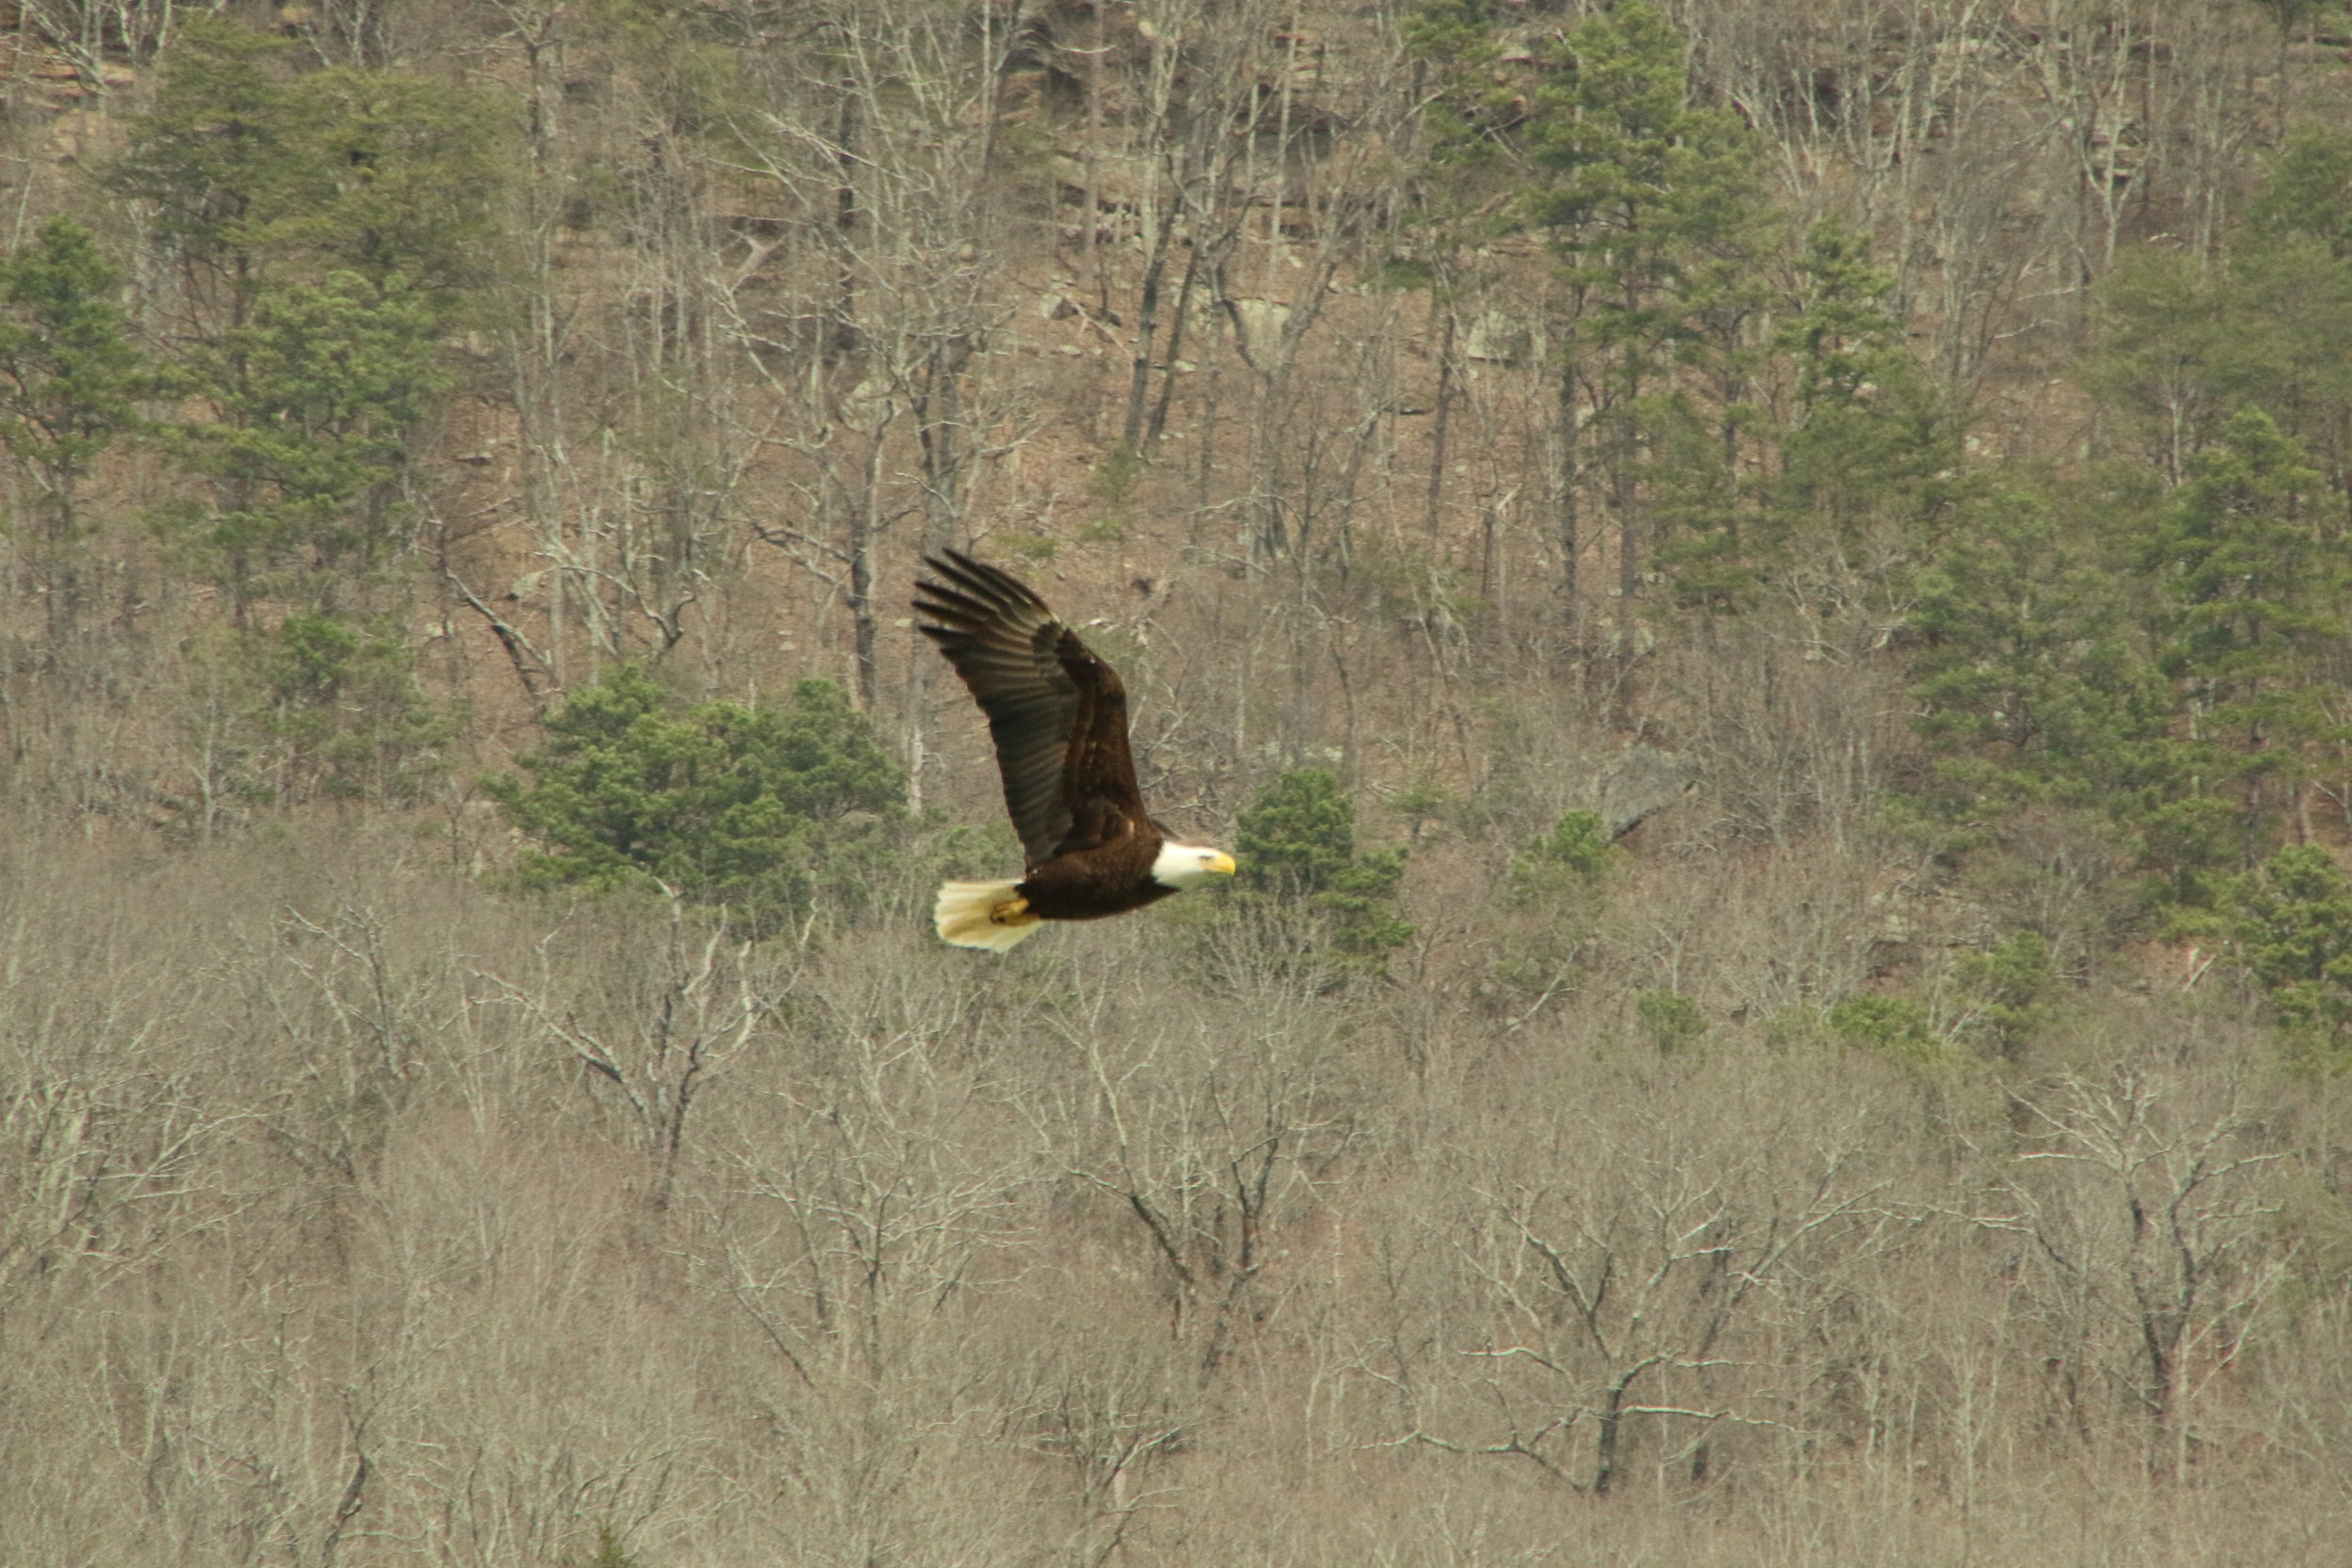 A Bald Eagle flying past Wiliam's Island